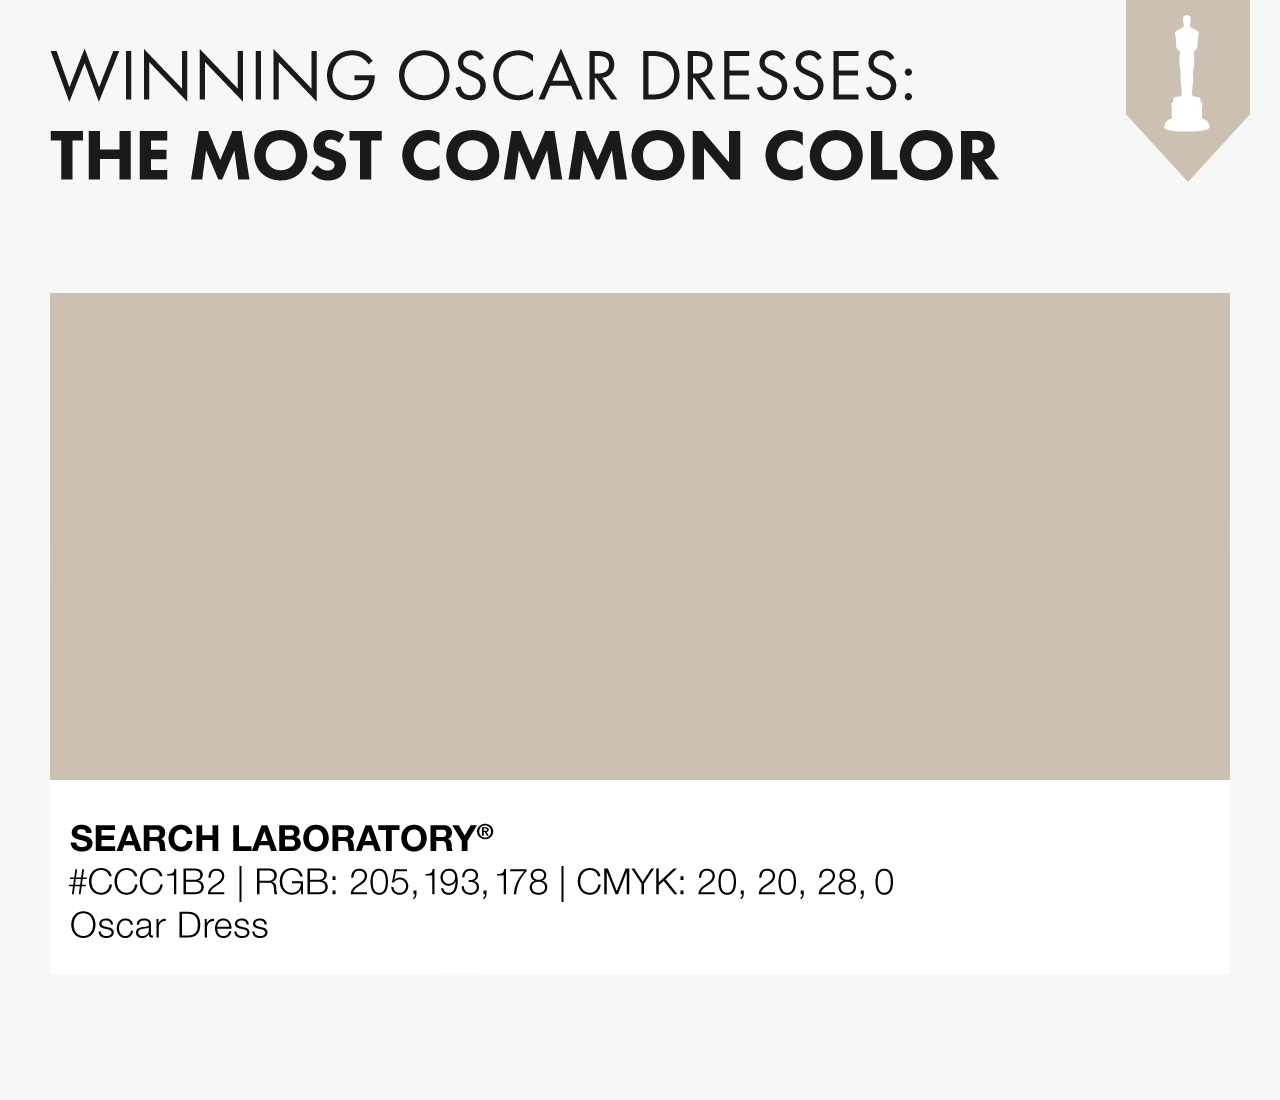 Winning oscar dresses - the most common color